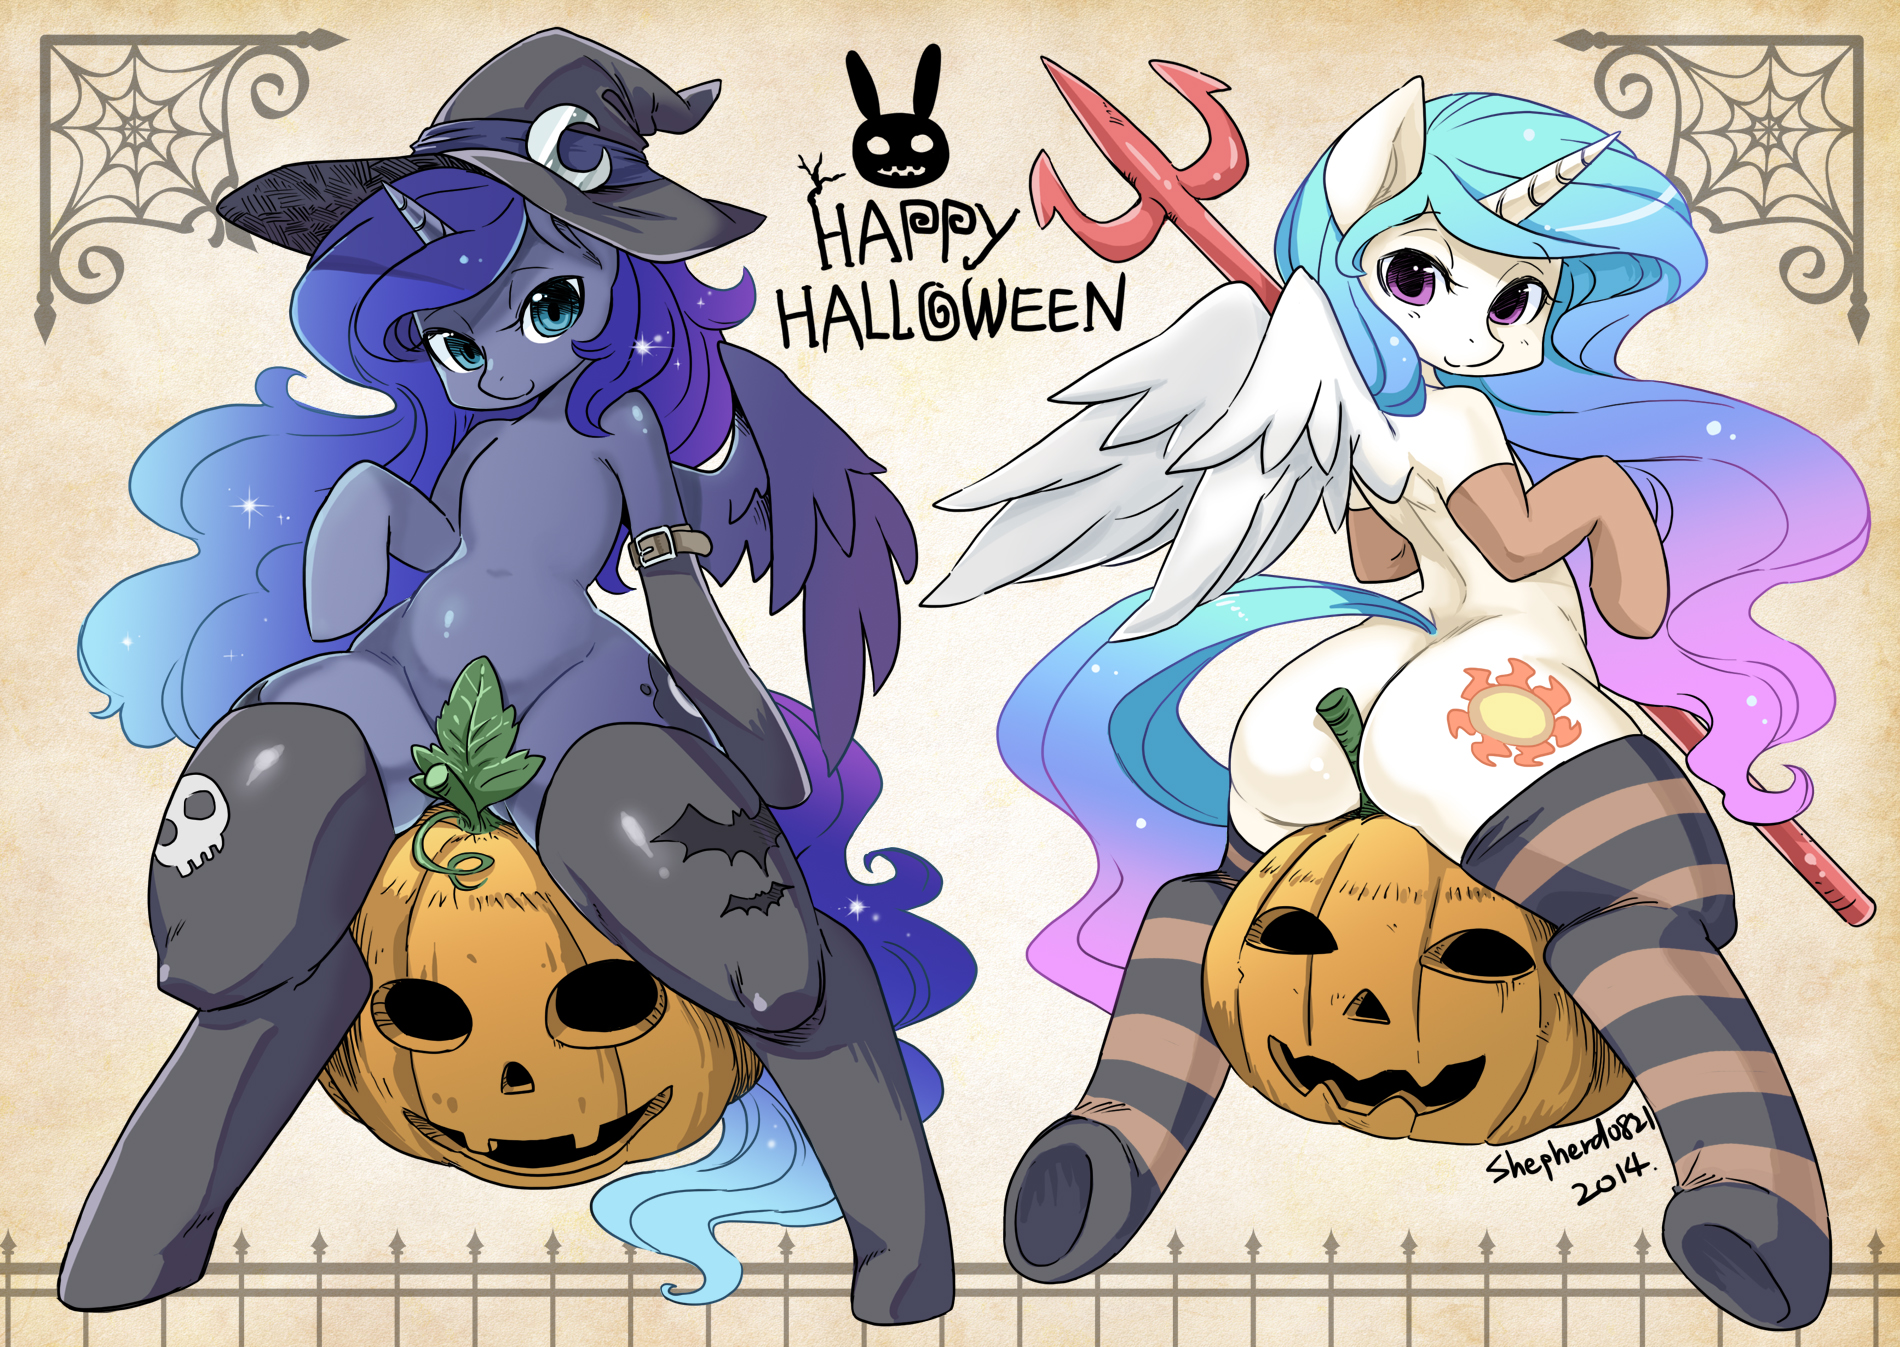 Happy Halloween 2014 | My Little Pony: Friendship is Magic | Know ...